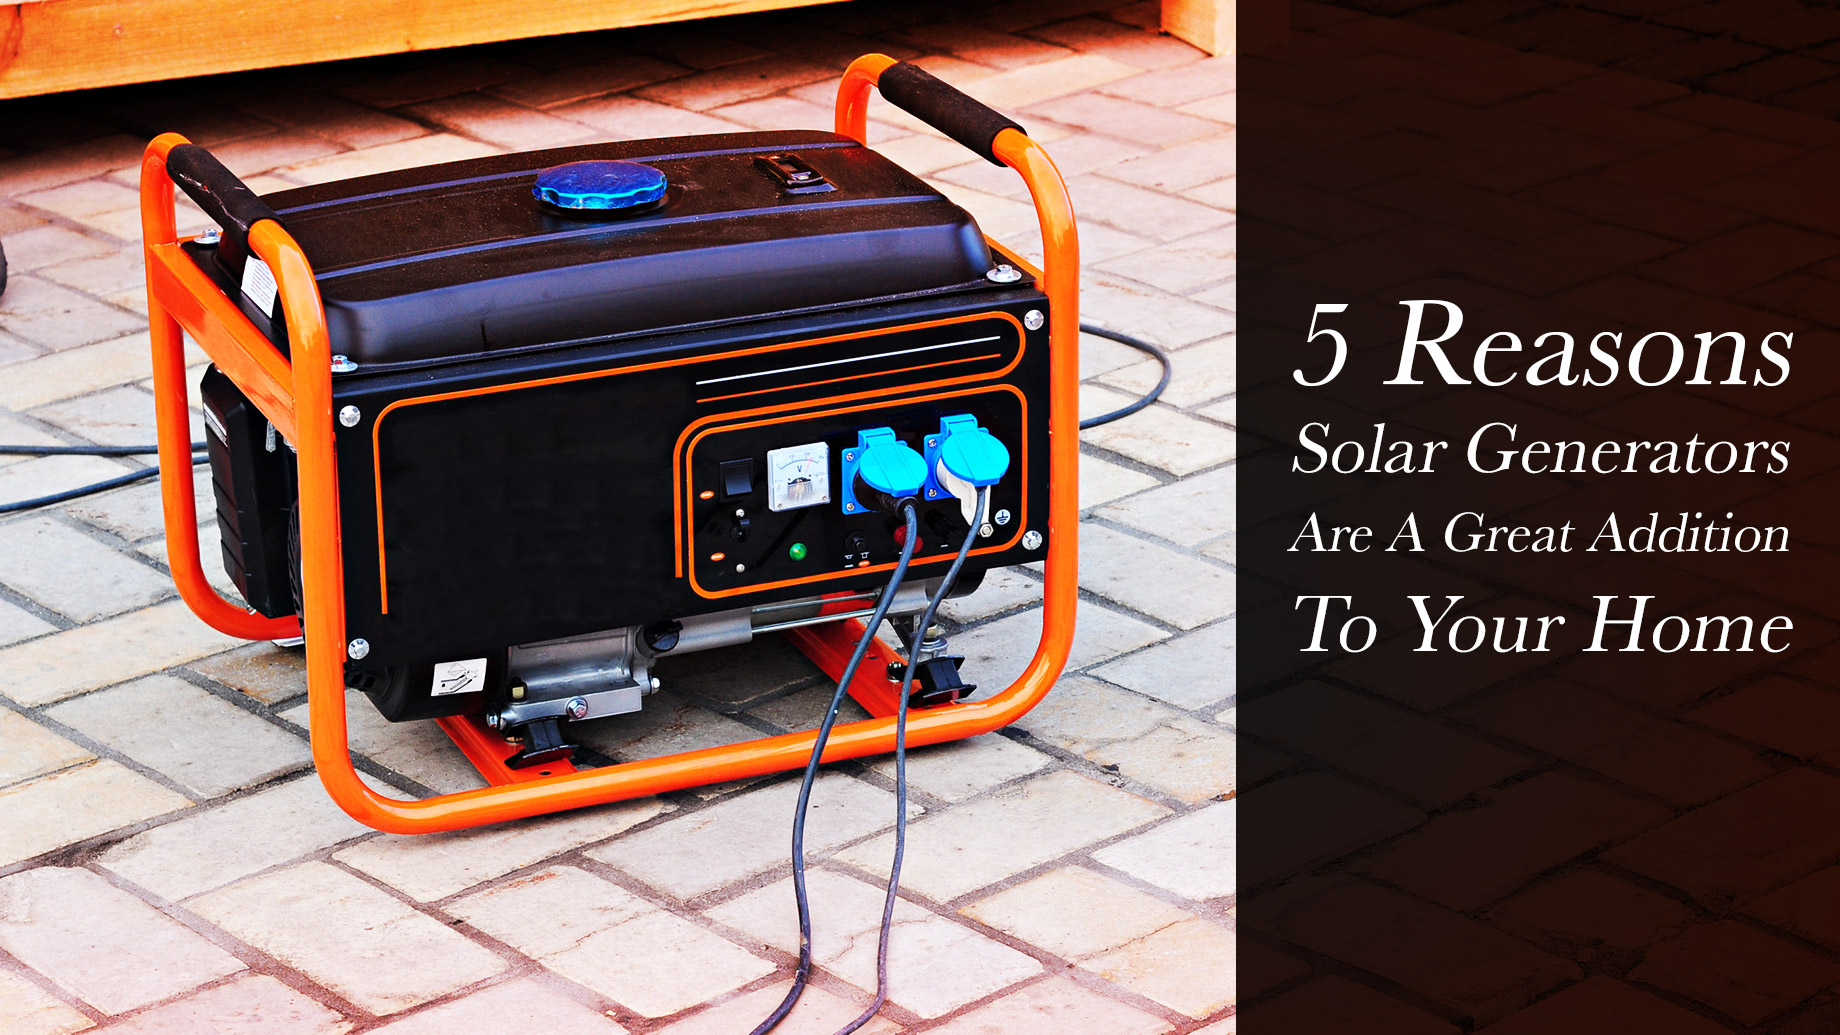 5 Reasons Solar Generators Are A Great Addition To Your Home